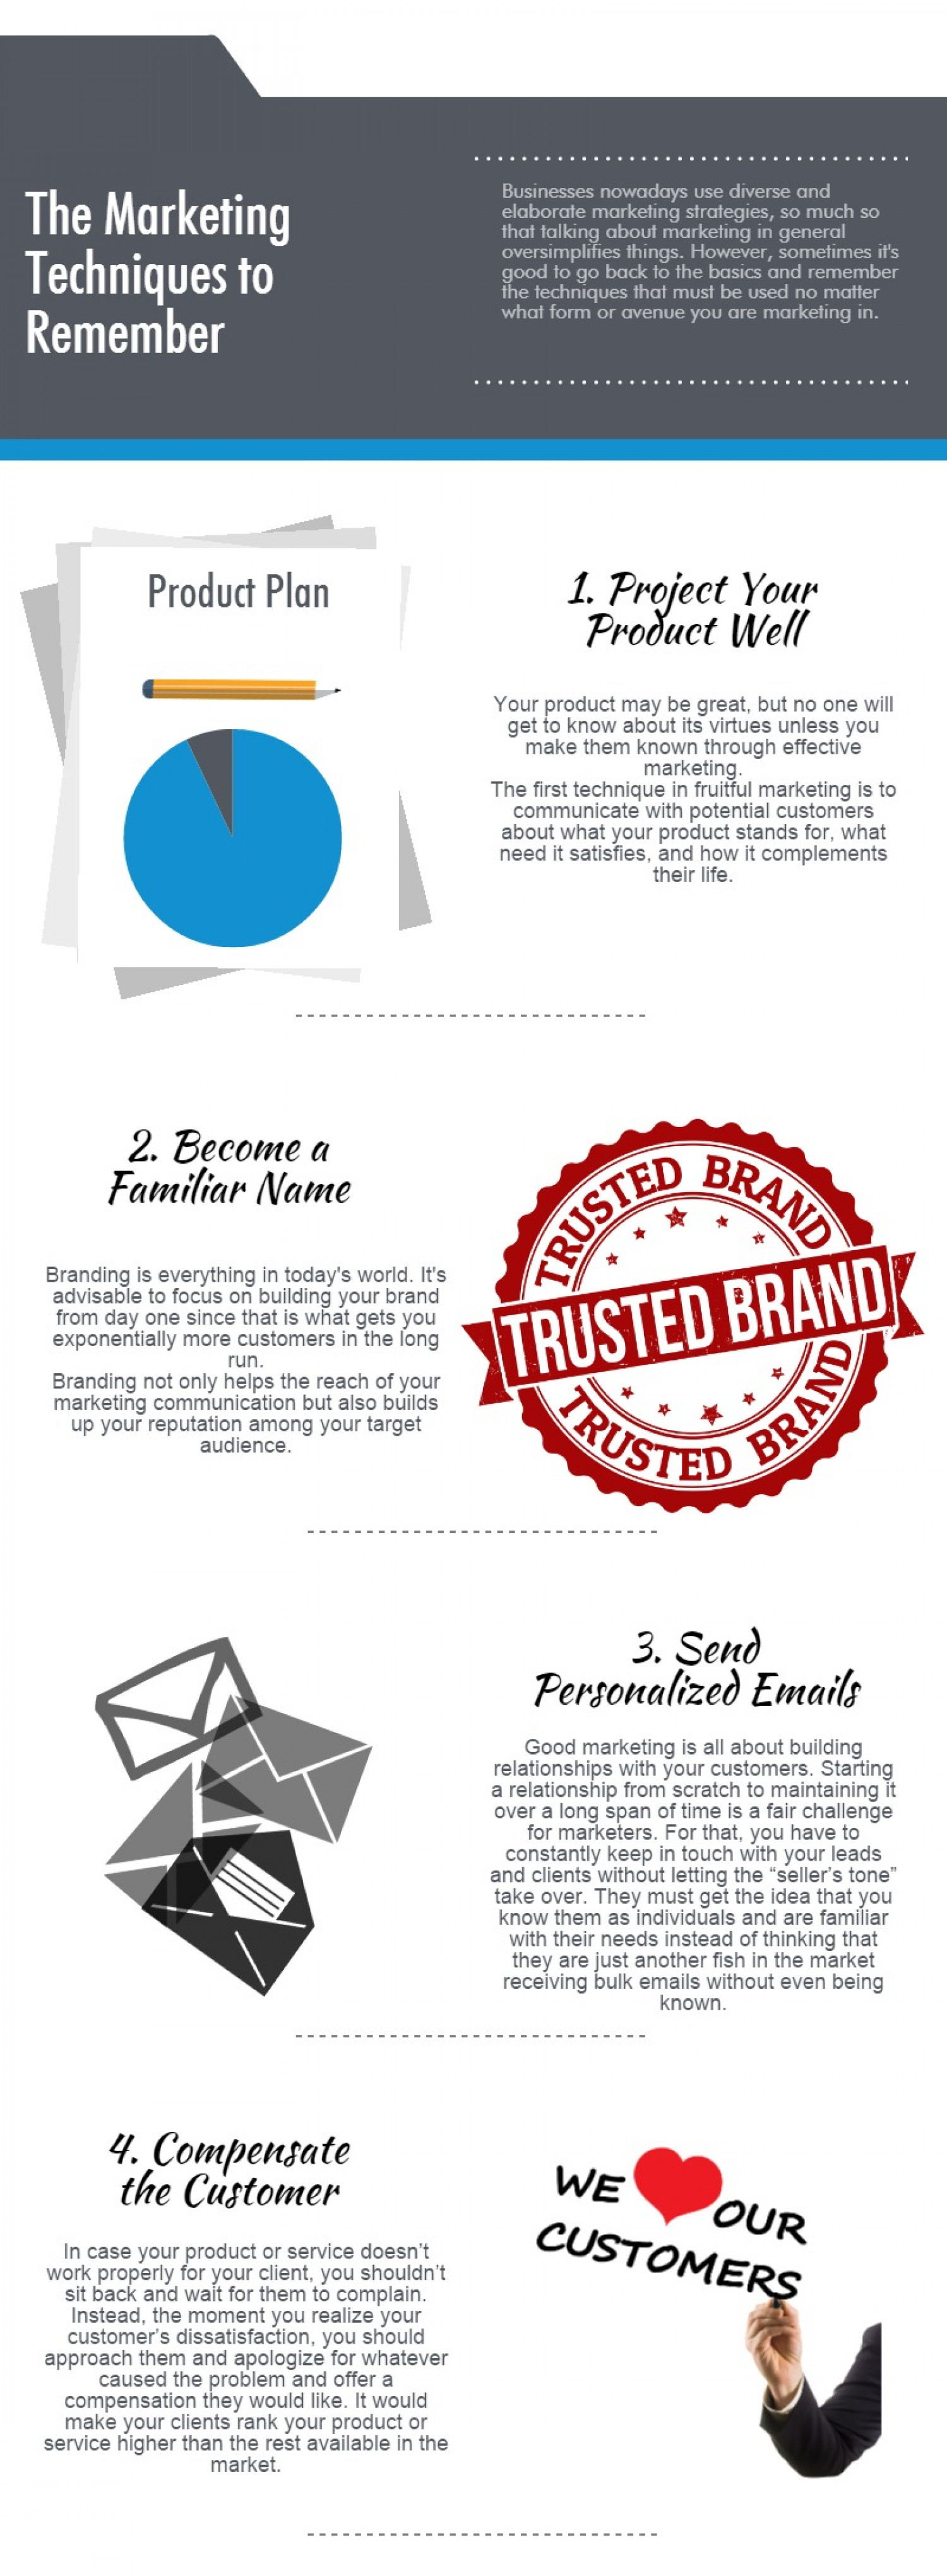 Marketing Techniques That Give You Goosebumps Infographic